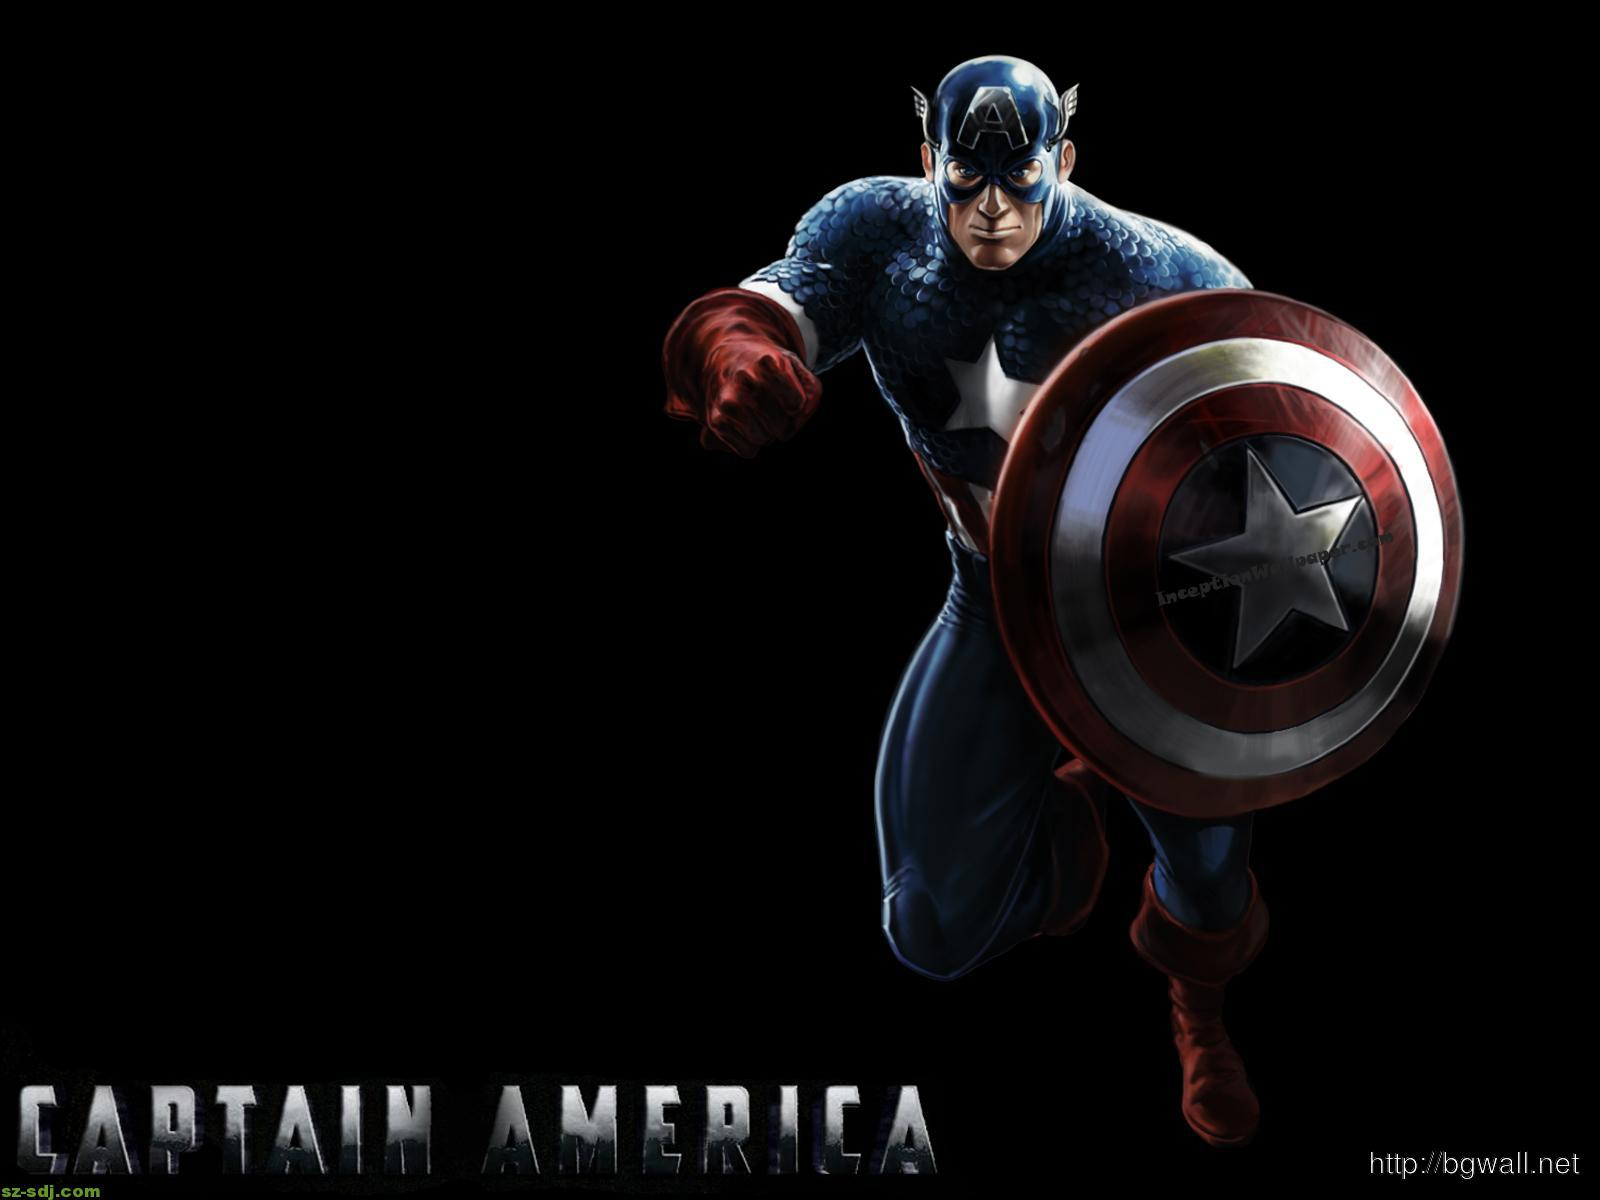 captain-america-with-black-background-wallpaper-desktop